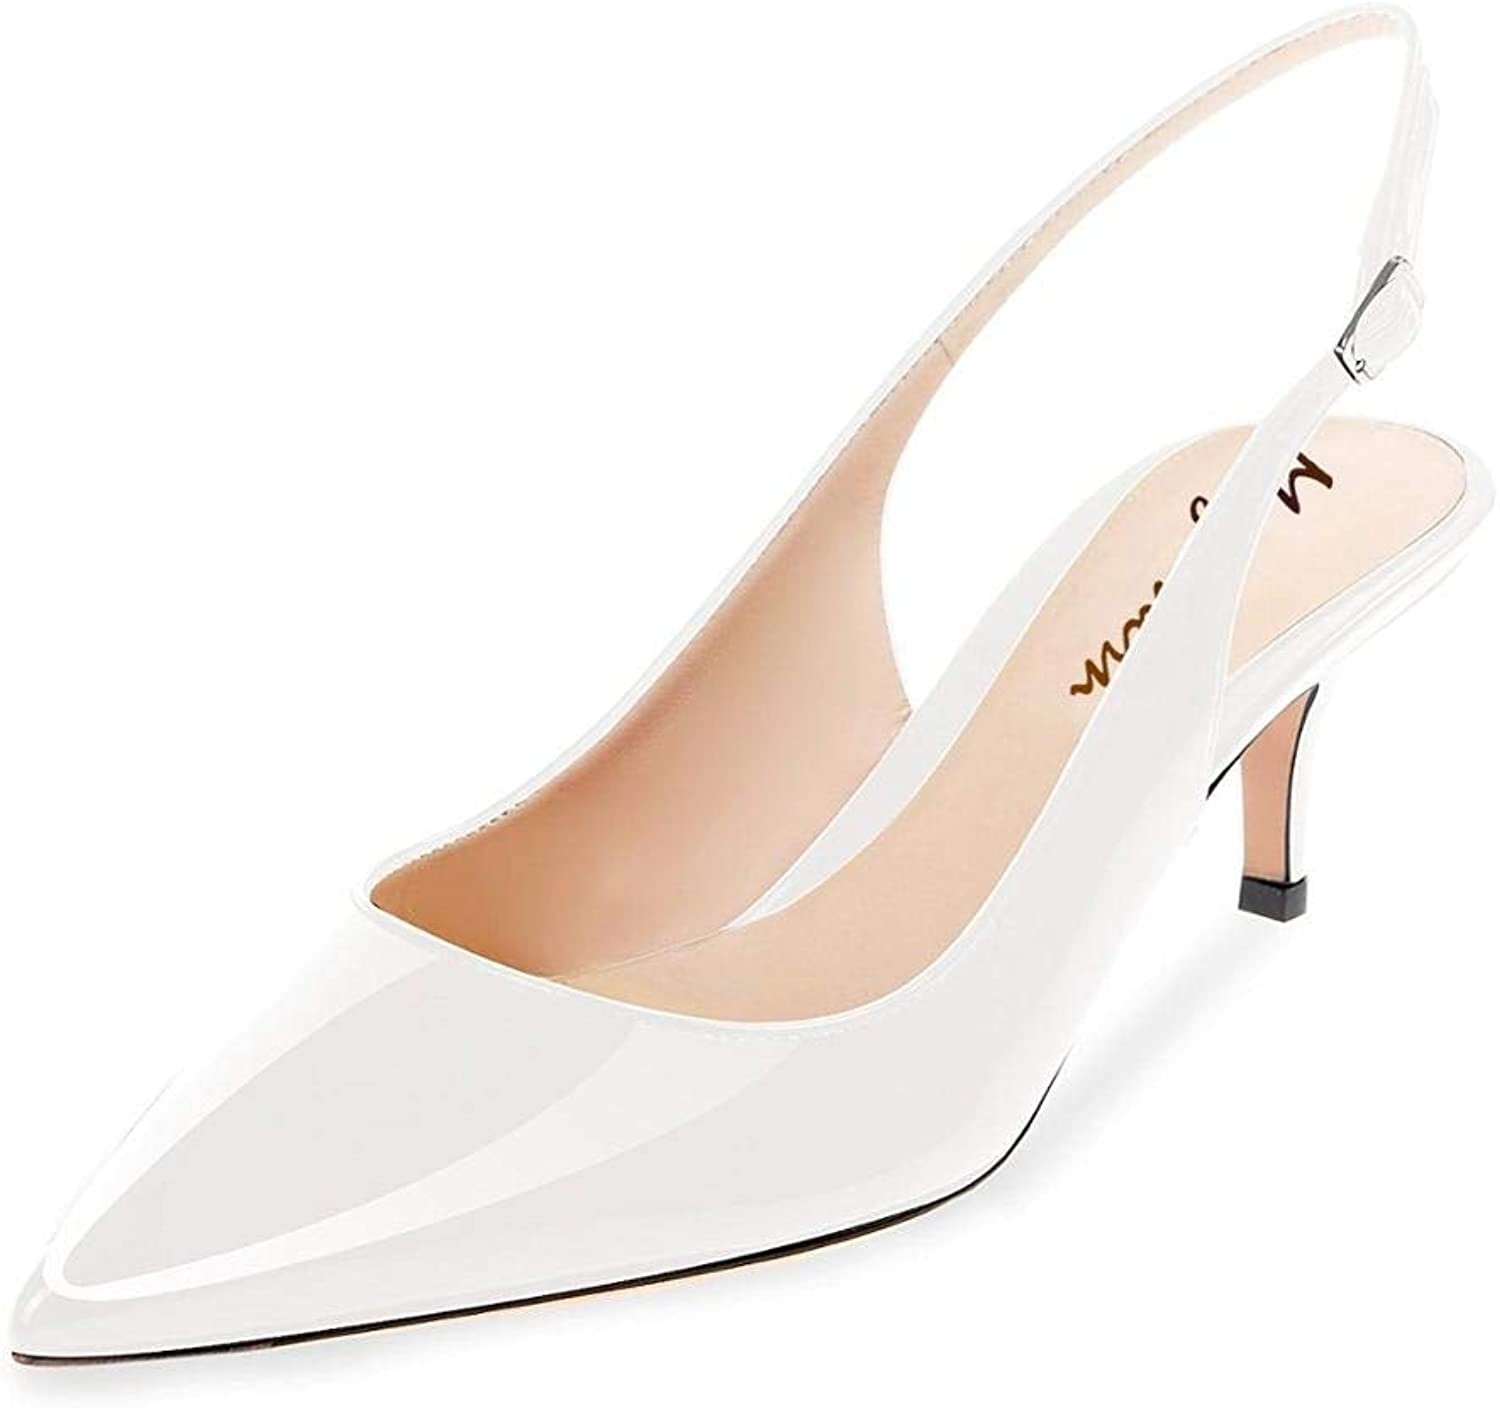 Maguidern Patent Leather Slingback Pumps, Women's Pointed Toe Slingbacks Buckle Ankle Strap Low Heel shoes White Size 9